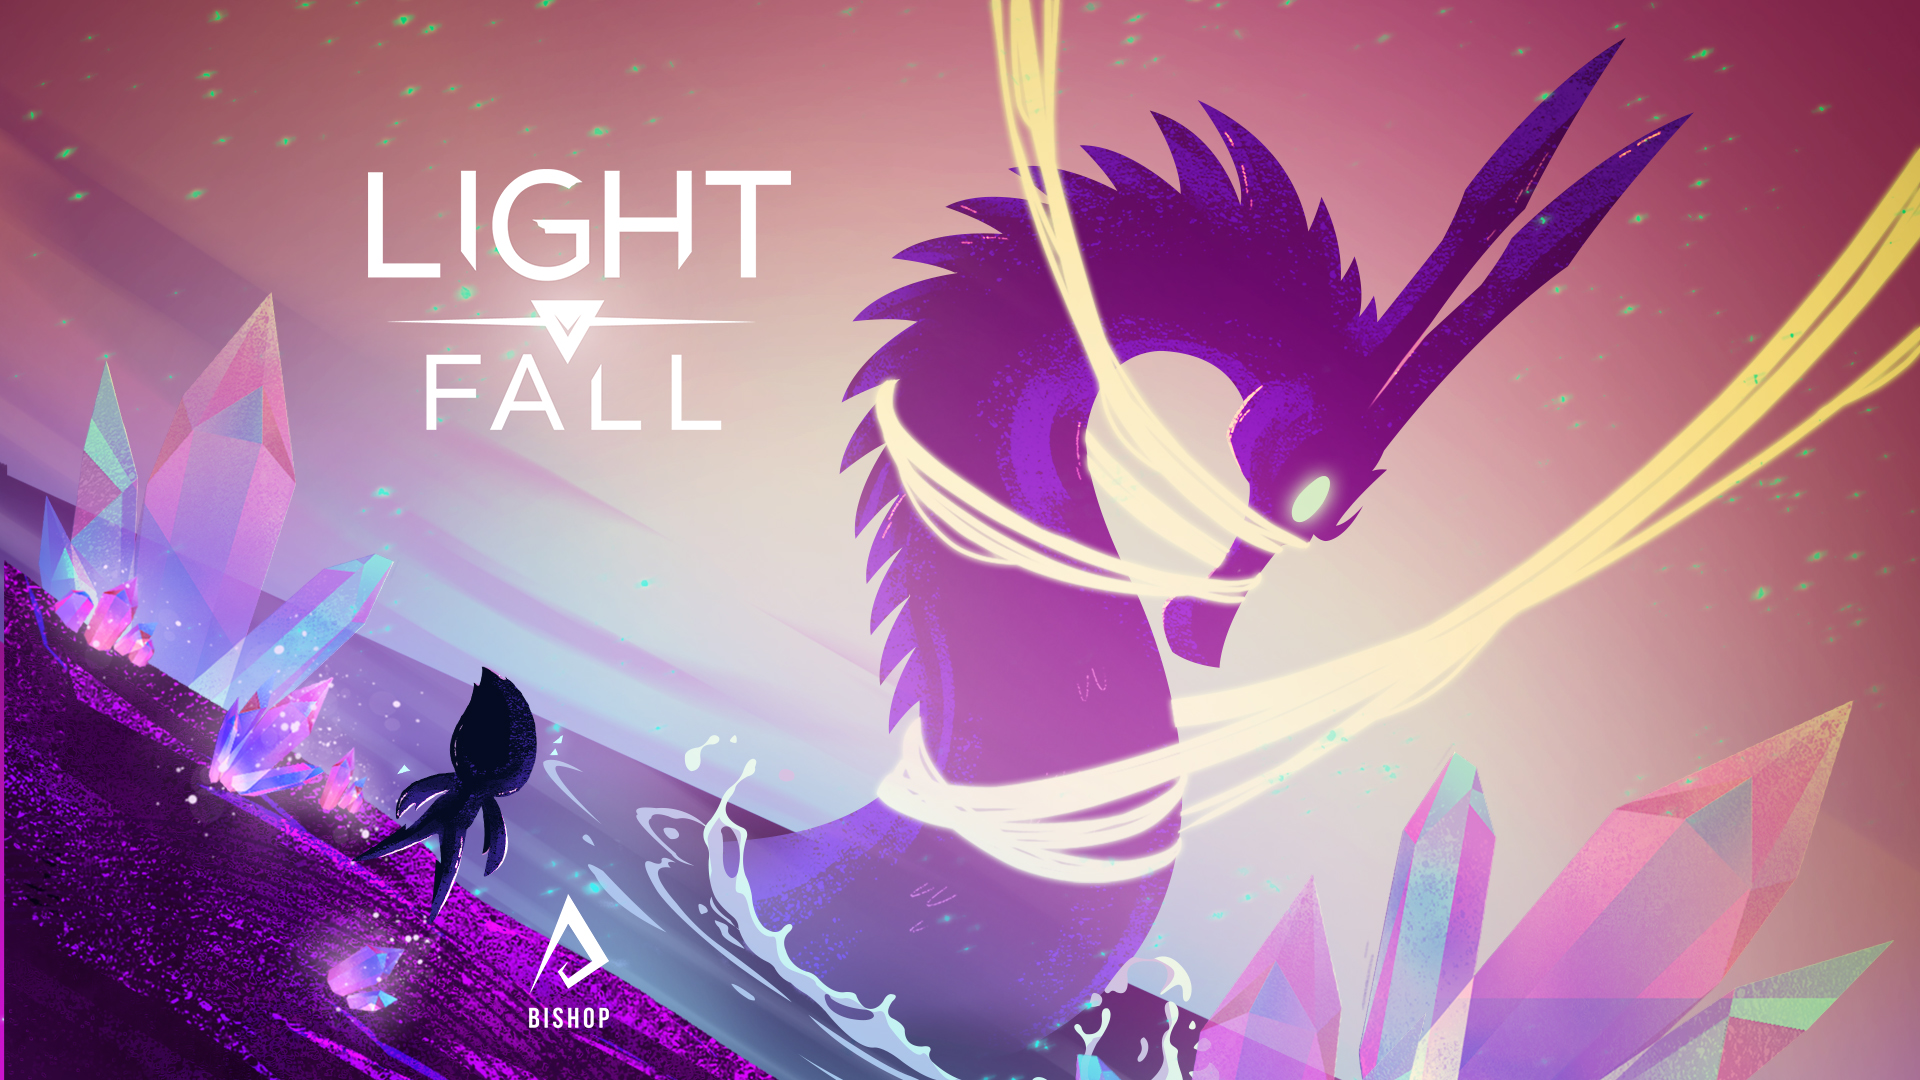 lightfall_02.jpg